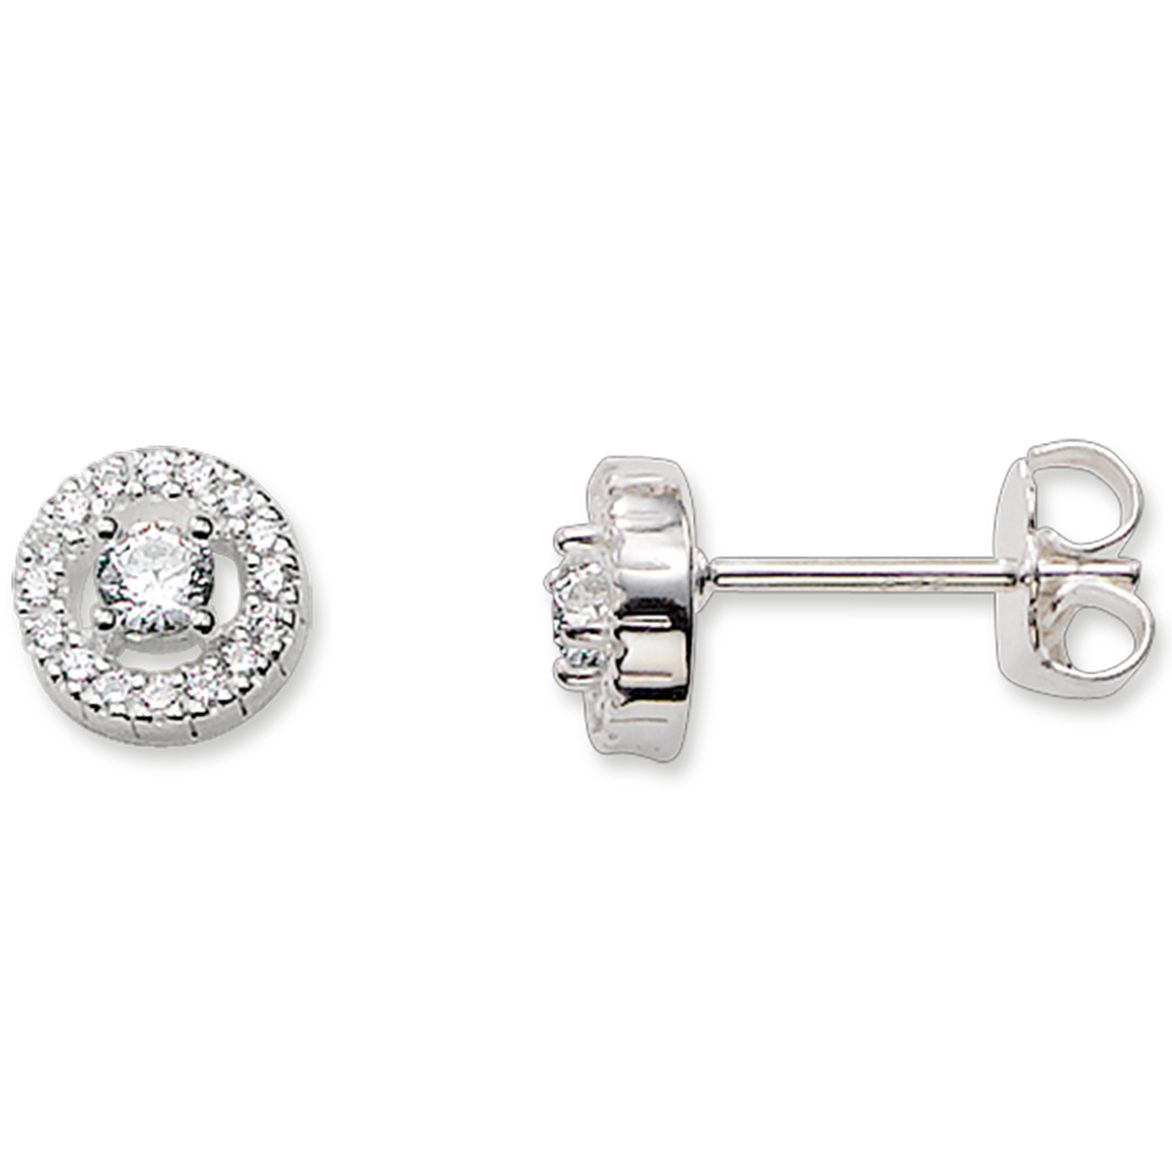 Thomas Sabo Sterling Silver Stone Set Studs - Product number 5697964